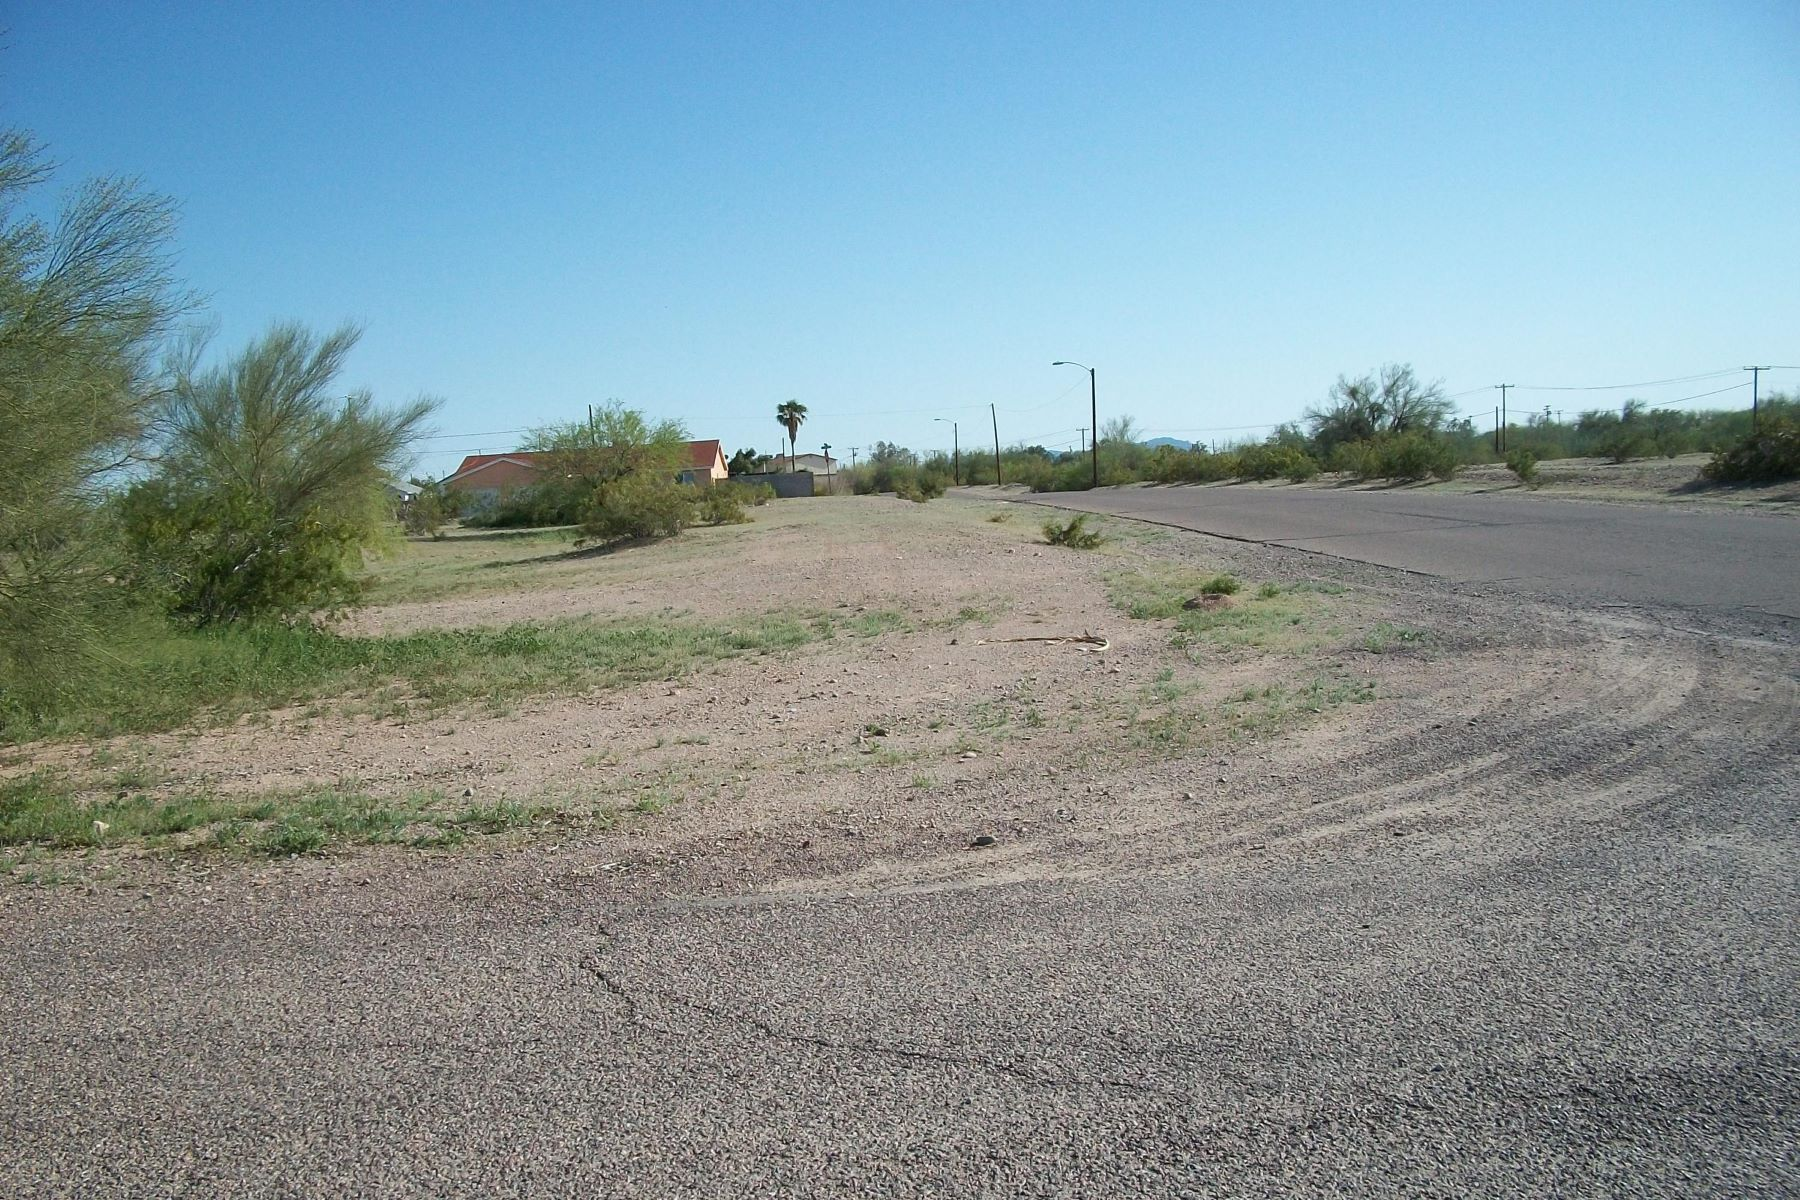 Land for Active at Lovely Residential lot 10 W HUNT ST n/a Gila Bend, Arizona 85337 United States